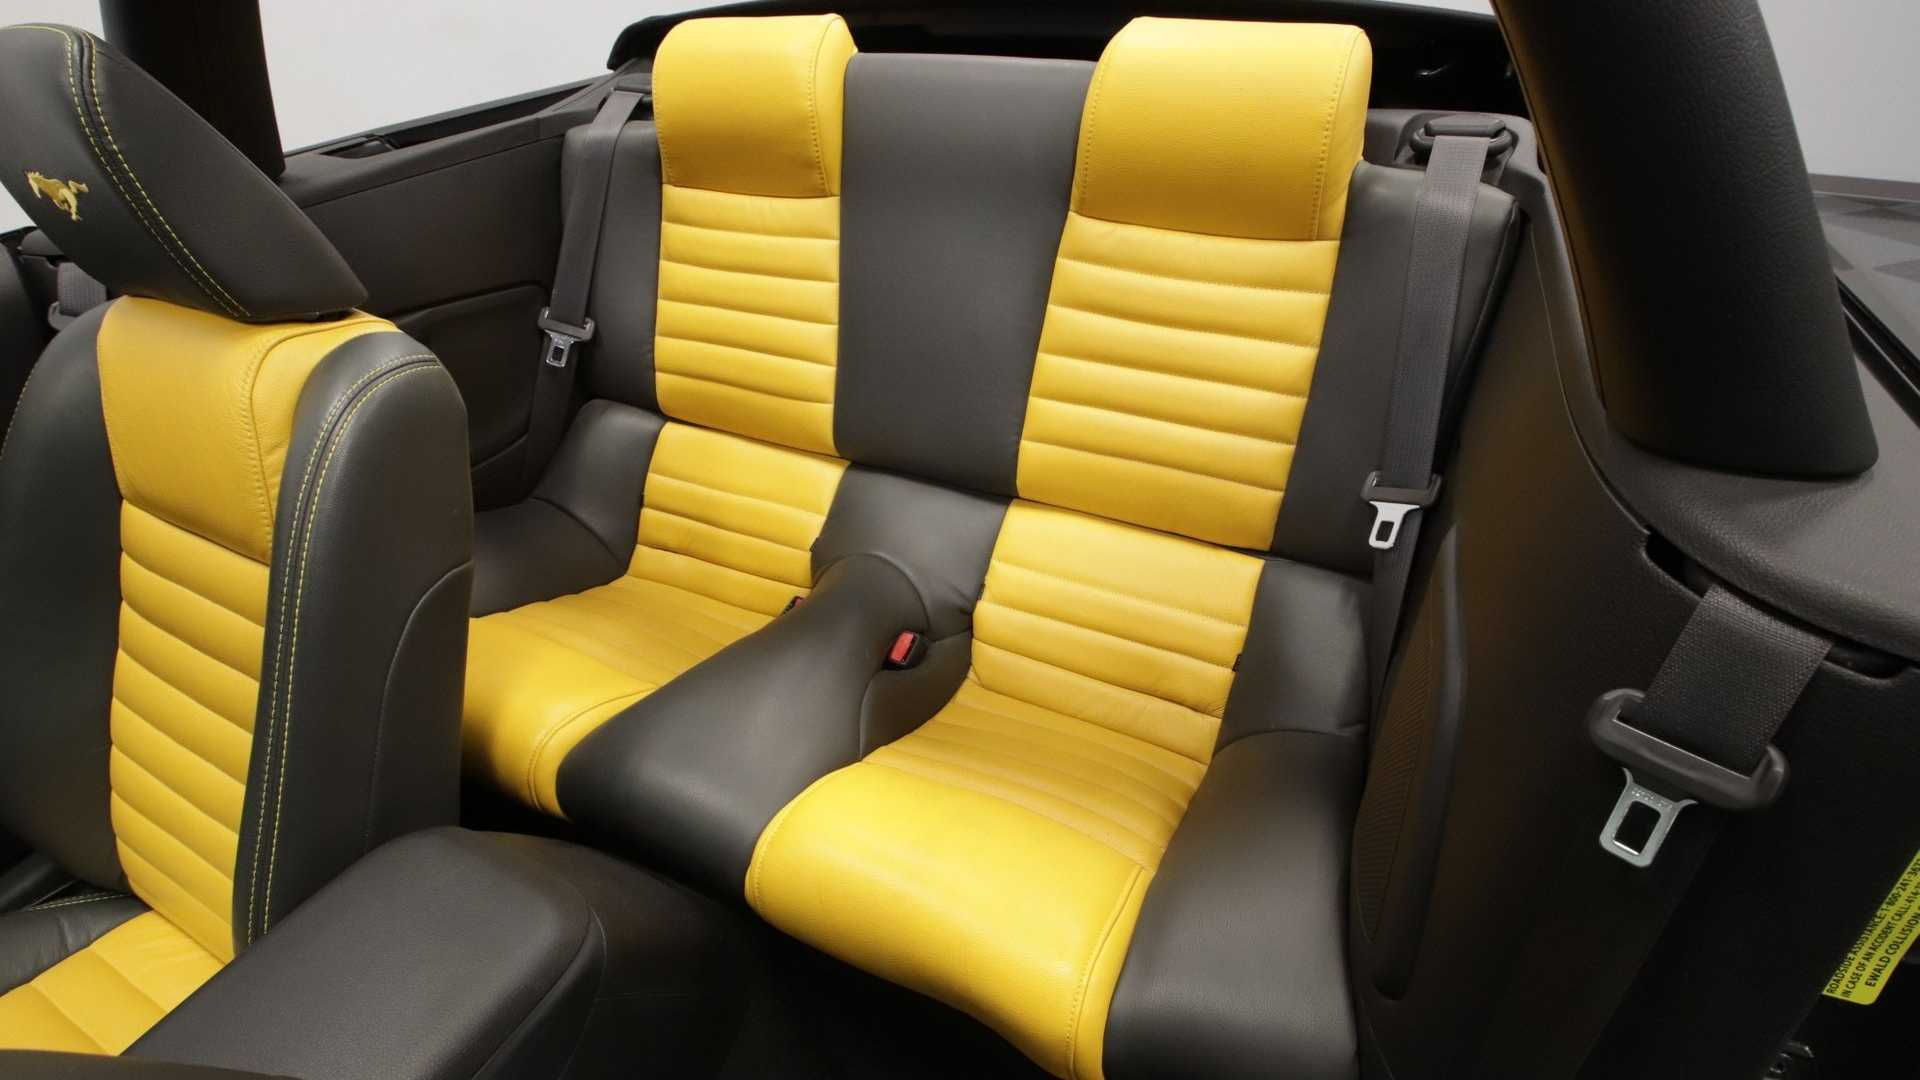 Admirable Steal The Show In This 2007 Ford Mustang Gt Convertible Beatyapartments Chair Design Images Beatyapartmentscom